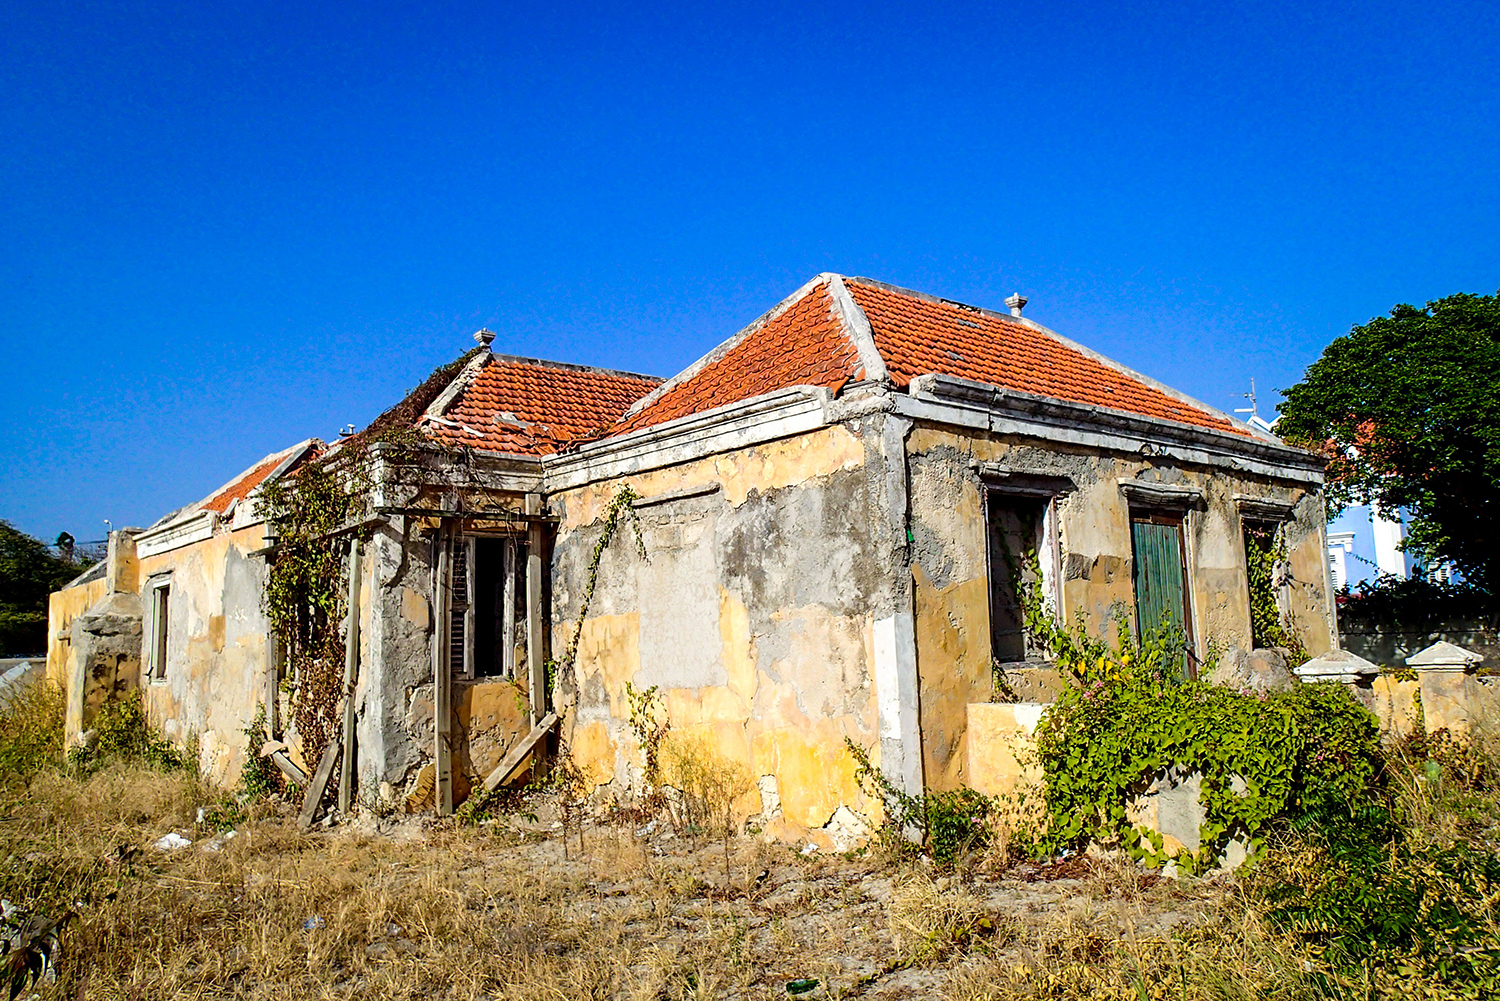 <p>A gracefully dilapidated house still shows its charms.</p>